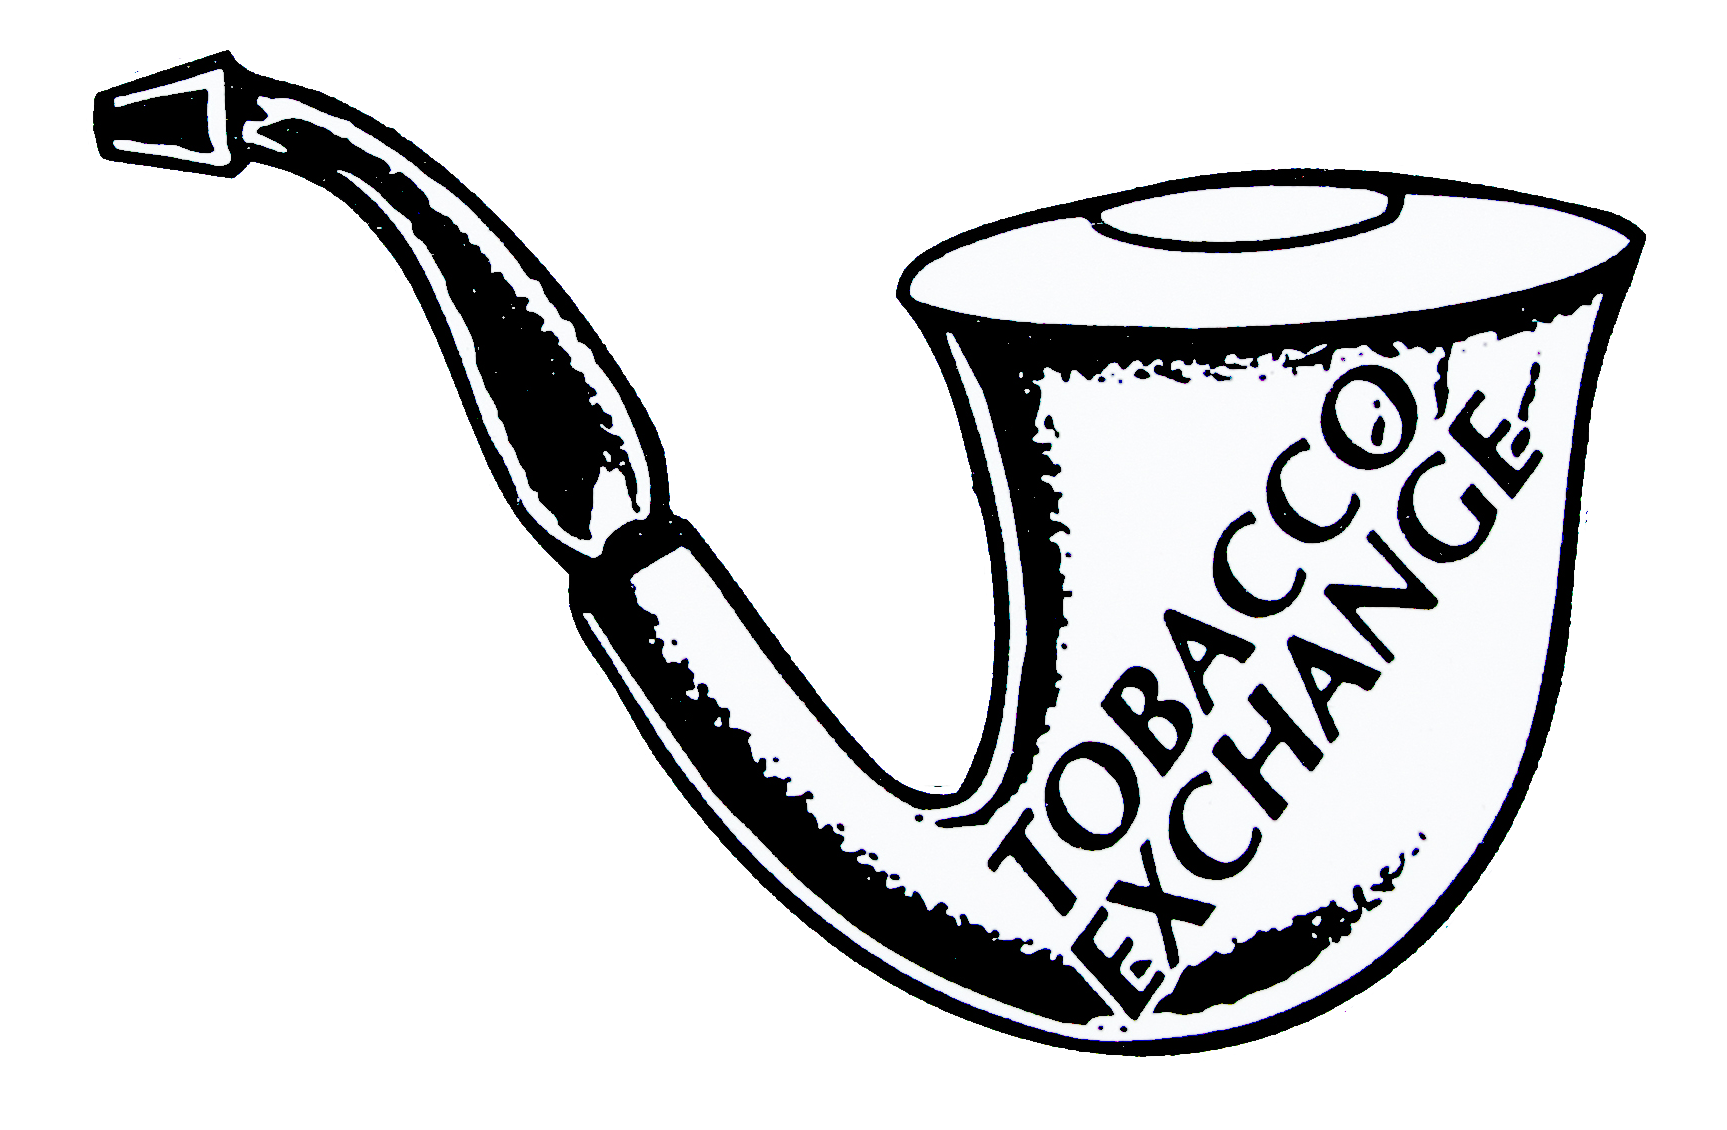 Cigar clipart drawing. Tobacco exchange oklahoma tobacconist